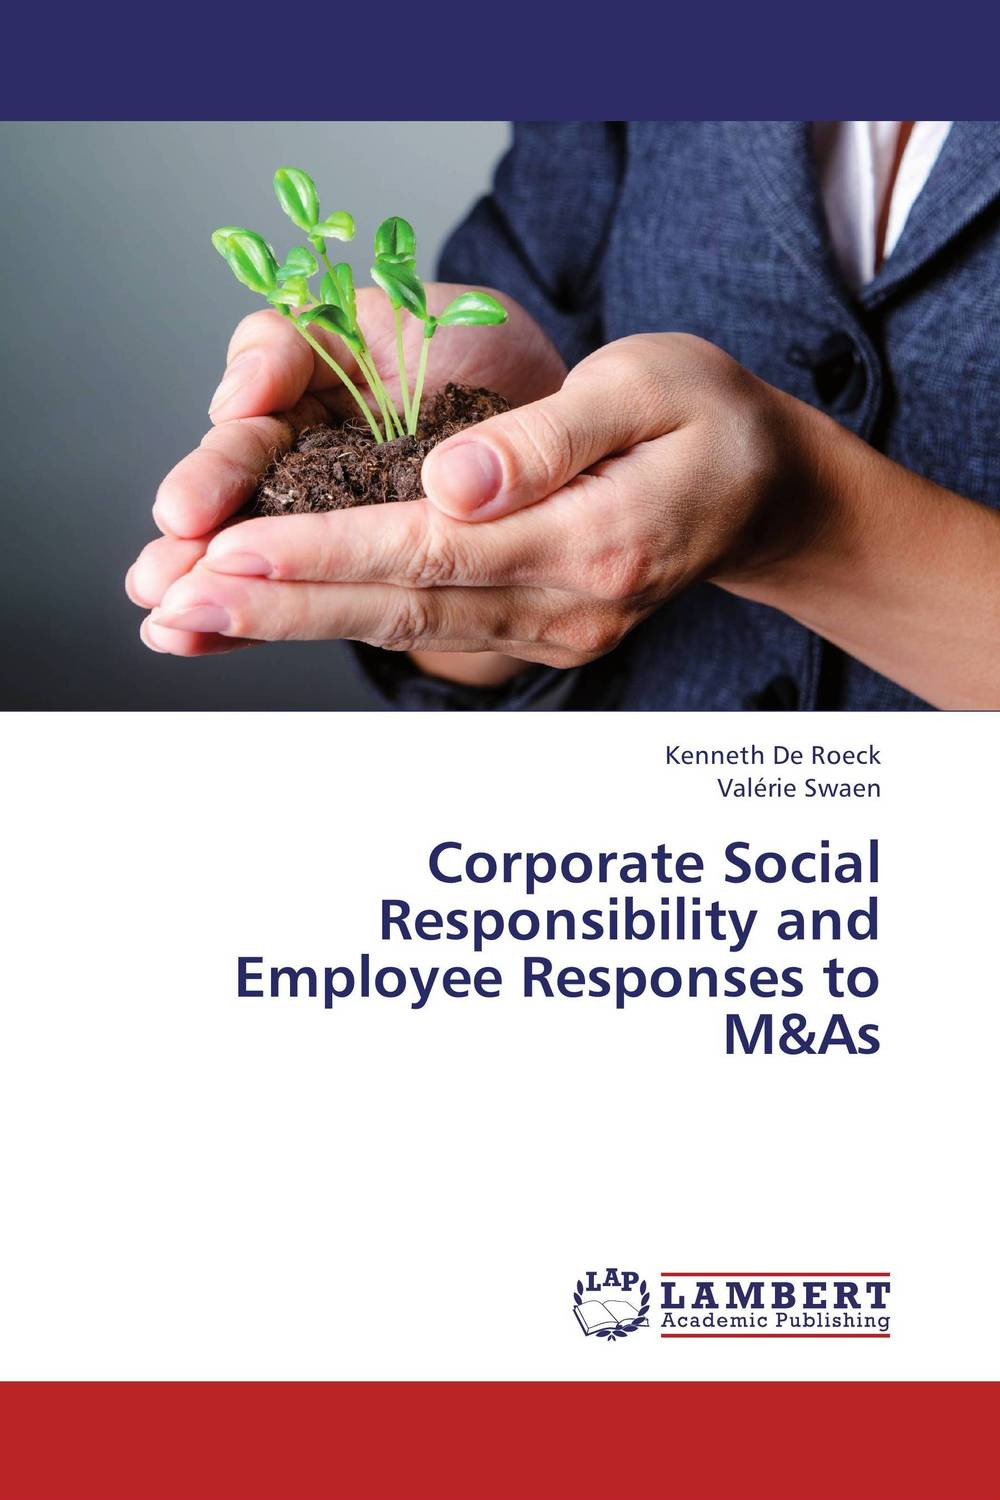 Corporate Social Responsibility and Employee Responses to M&As dan zheng the impact of employees perception of corporate social responsibility